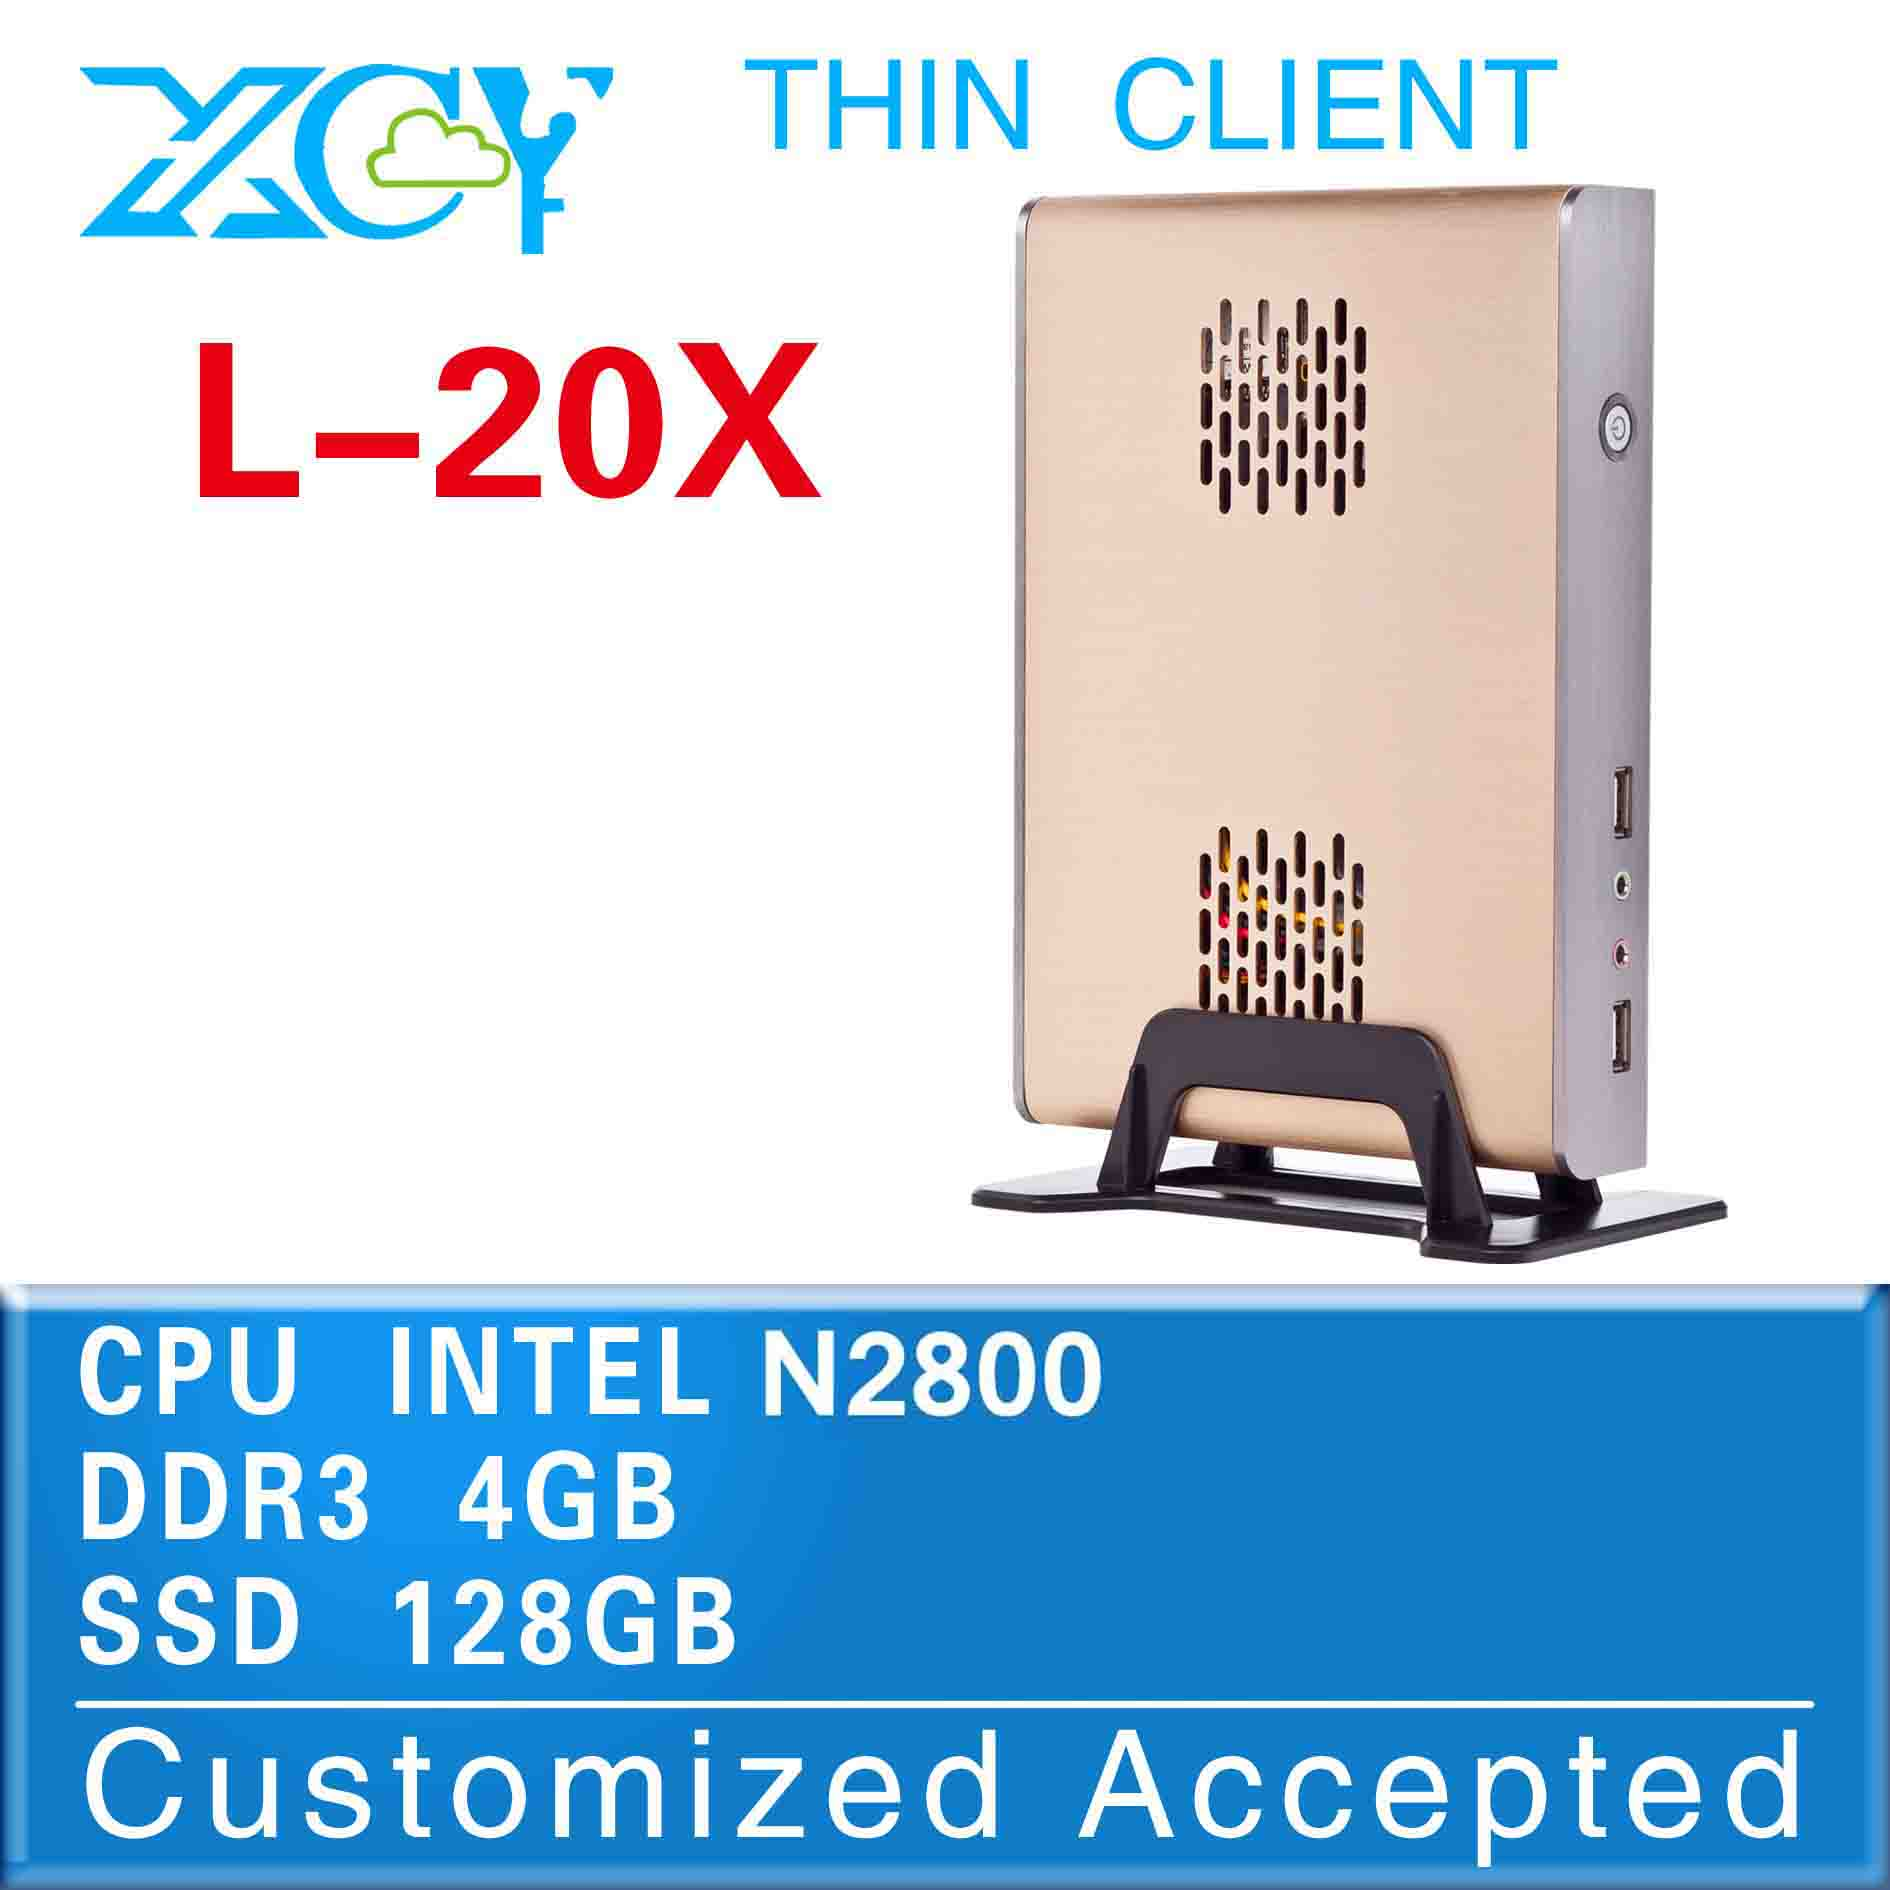 fanless linux server small size pc games L-20X 4g ram 128G SSD support Windows 7, WIFI, Webcam, HDMI(China (Mainland))